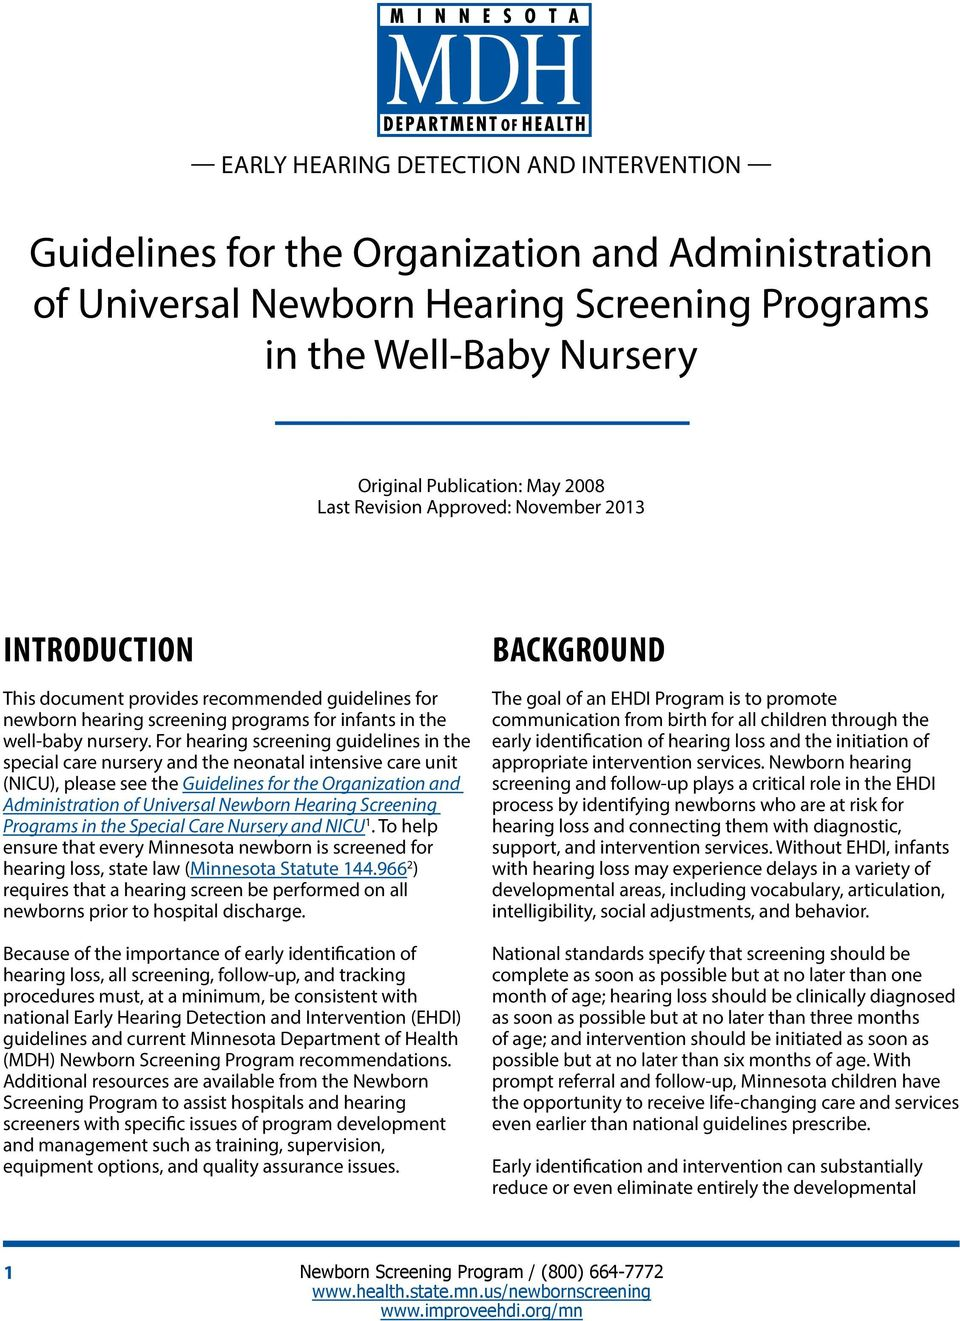 For hearing screening guidelines in the special care nursery and the neonatal intensive care unit (NICU), please see the Guidelines for the Organization and Administration of Universal Newborn